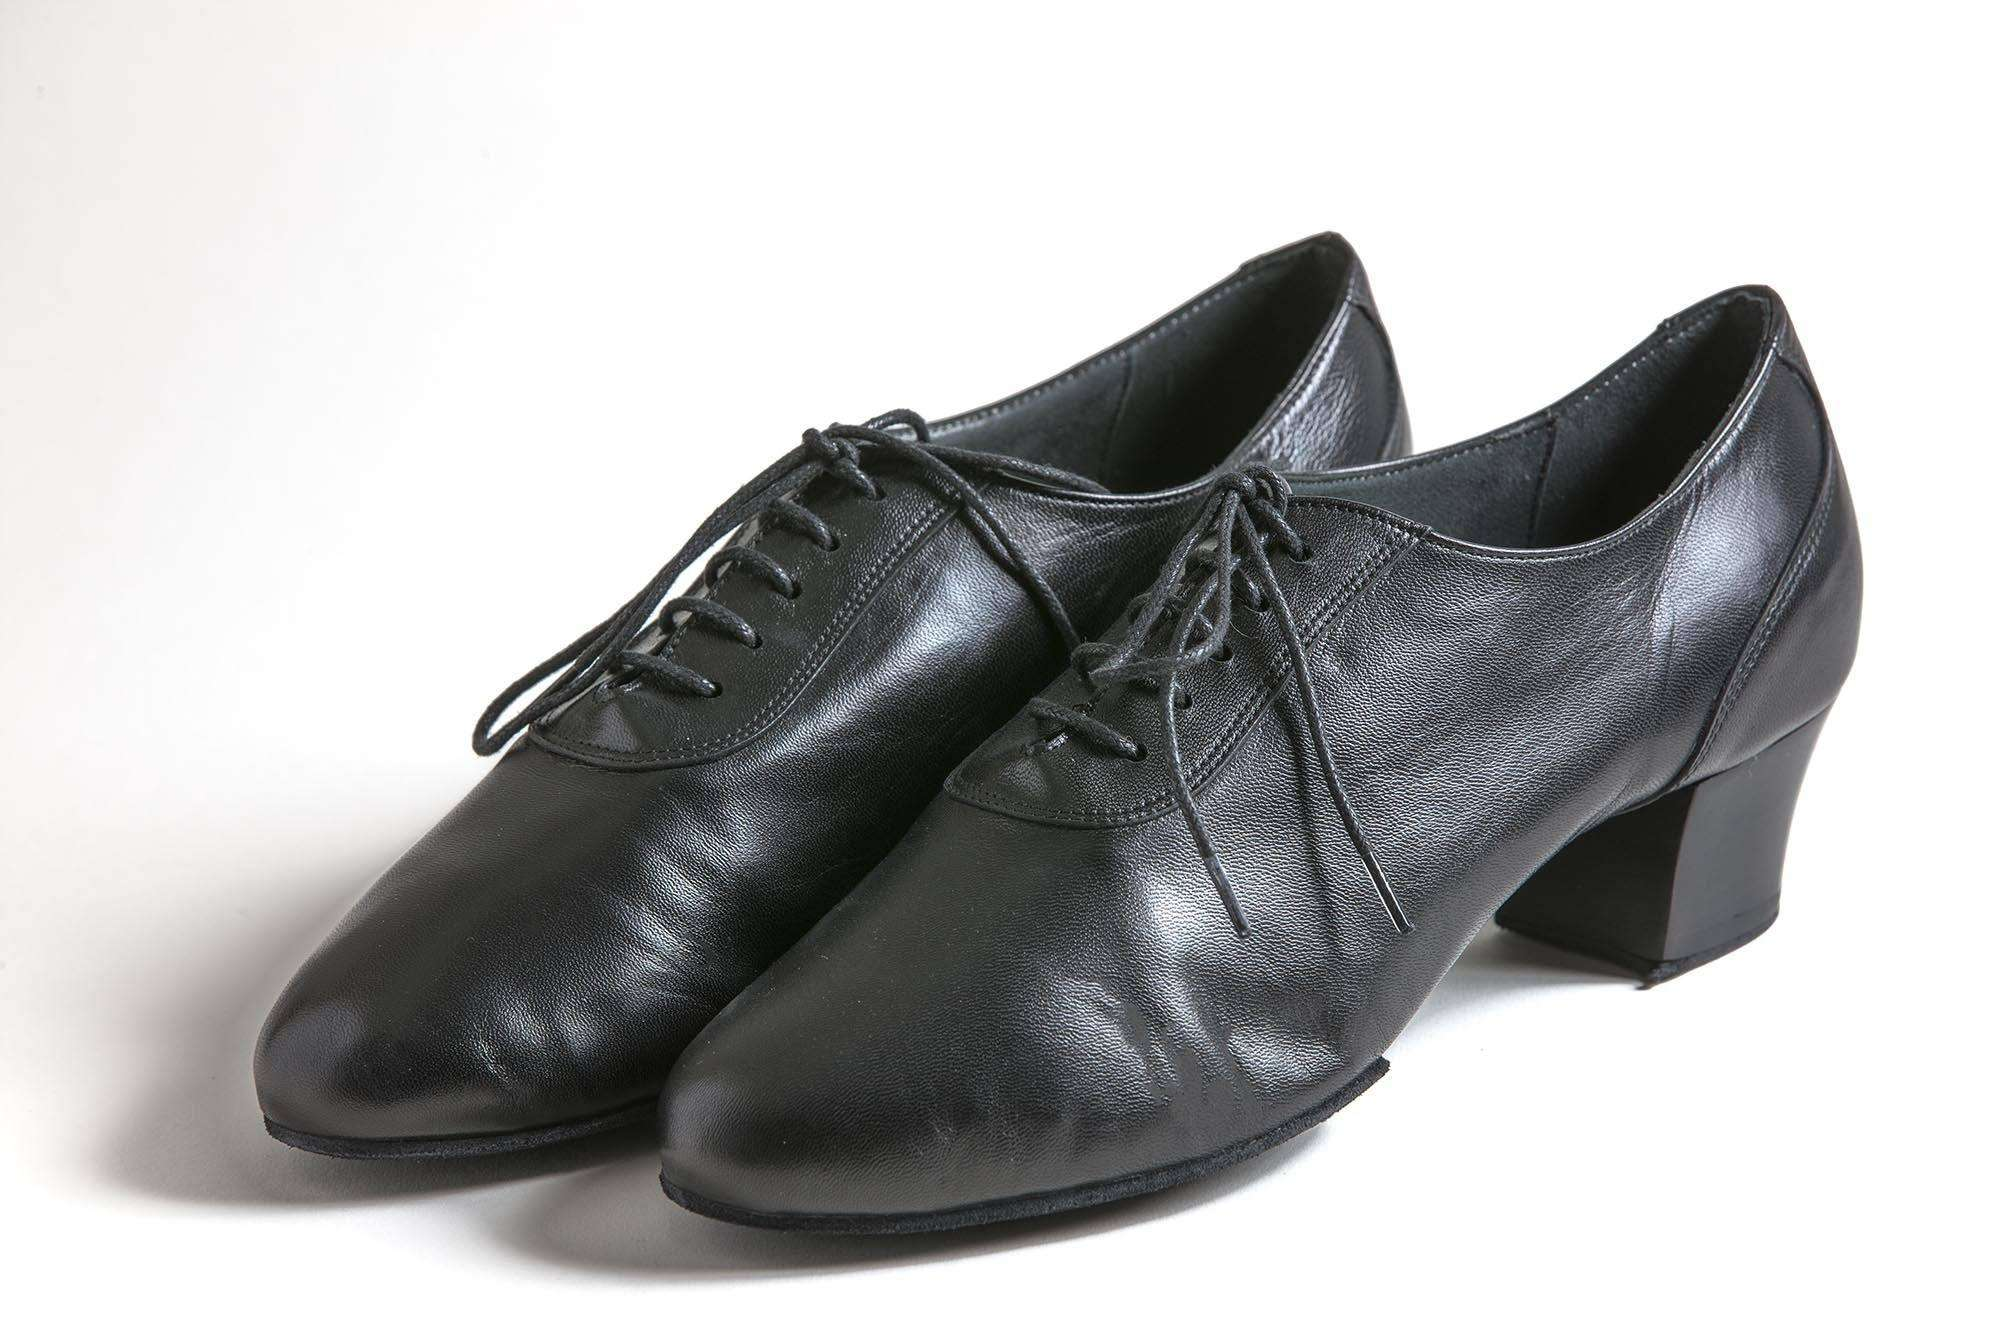 Sergio Leather Men's Latin Dance Shoes - Anita Flavina